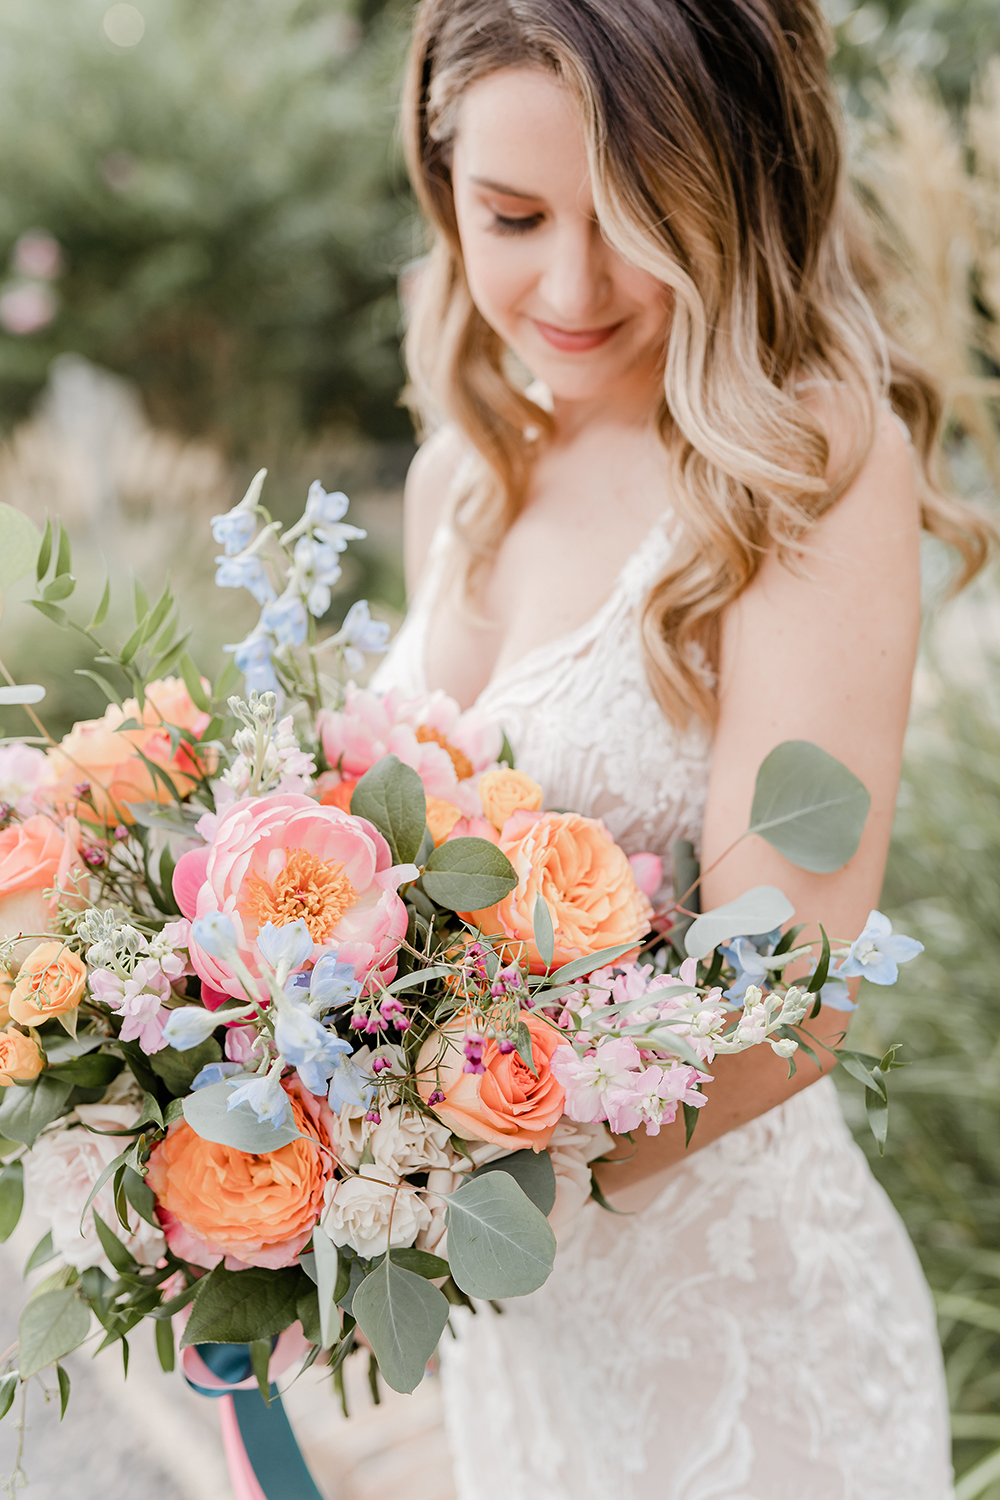 Model in lace white gown looking down at a pastel colored bouquet filled with pink peonies, light blue hydrangea twigs, pink stock, orange roses, and eucalyptus at a wedding styled shoot at wedding venue, The Carriage House.